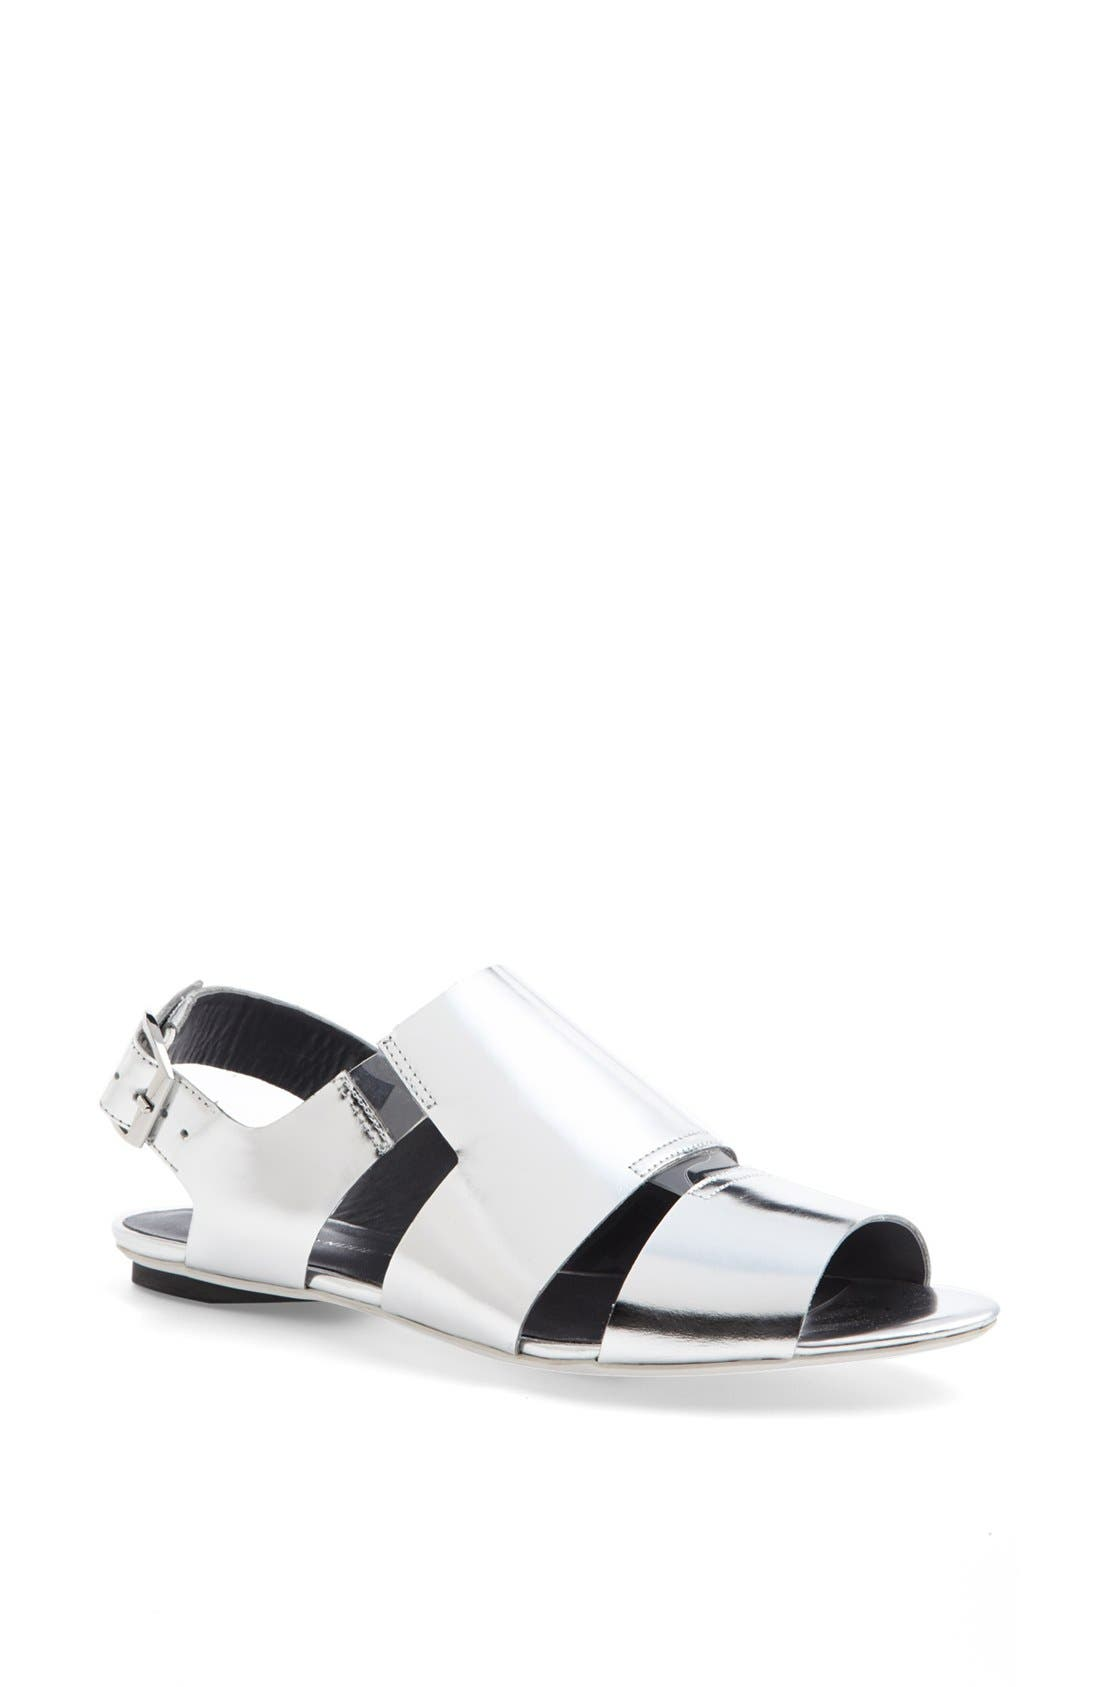 Alternate Image 1 Selected - United Nude Collection 'Kim' Sandal (Online Only)